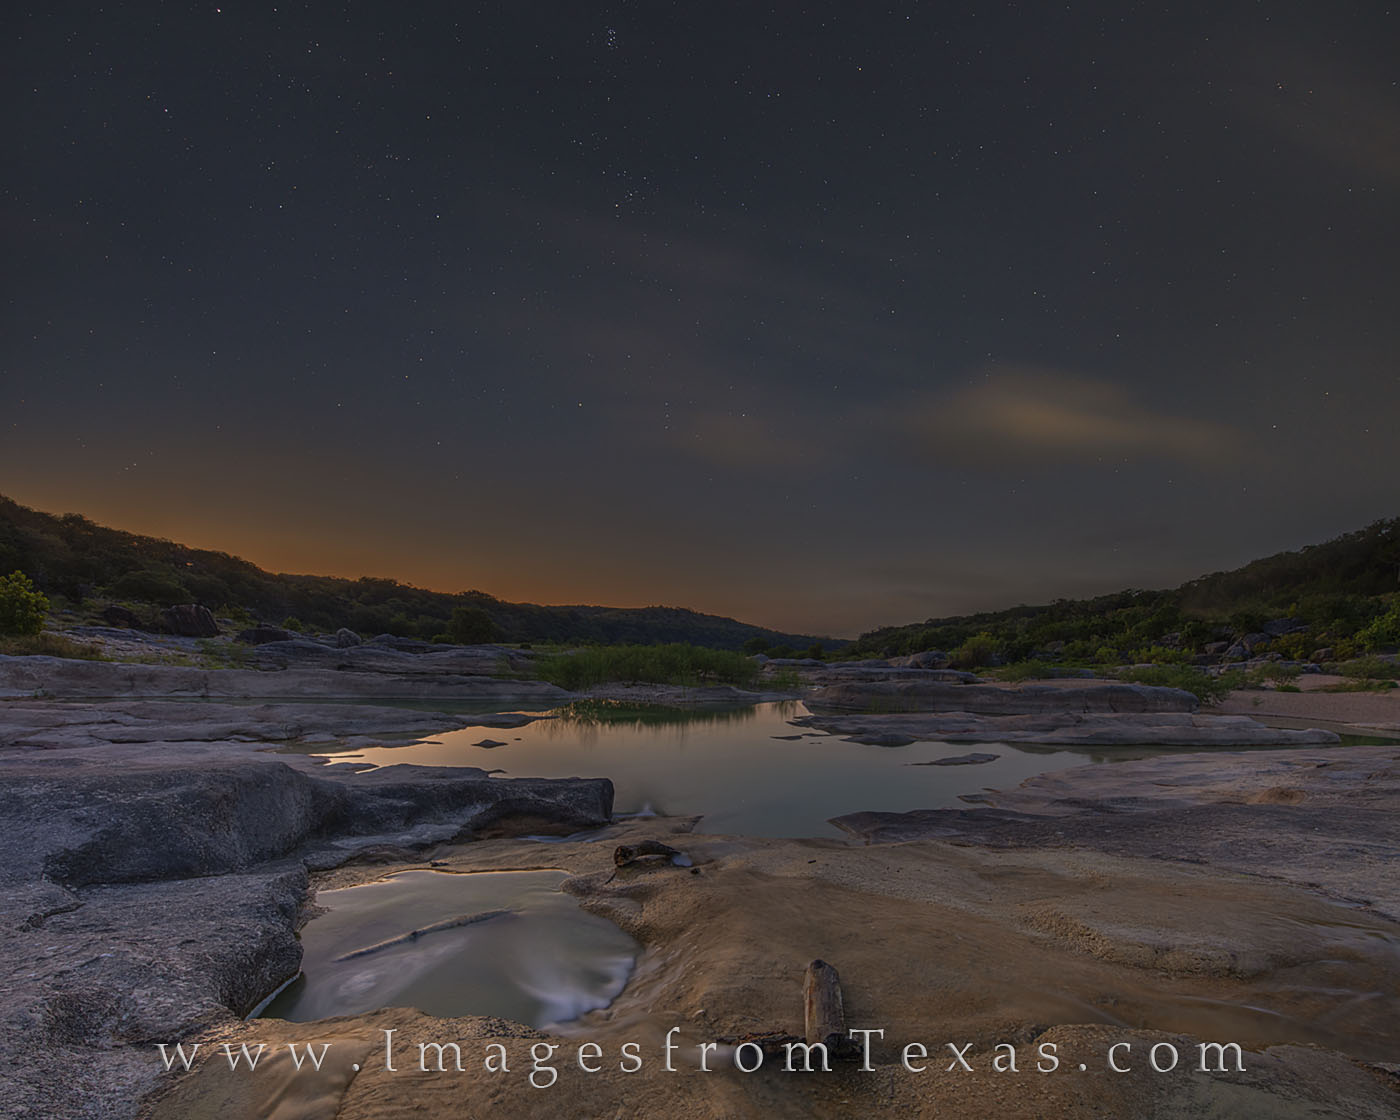 orion, stars, pedernales river, pedernales falls, texas hill country, night, morning, glow, sun, constellations, peace, photo